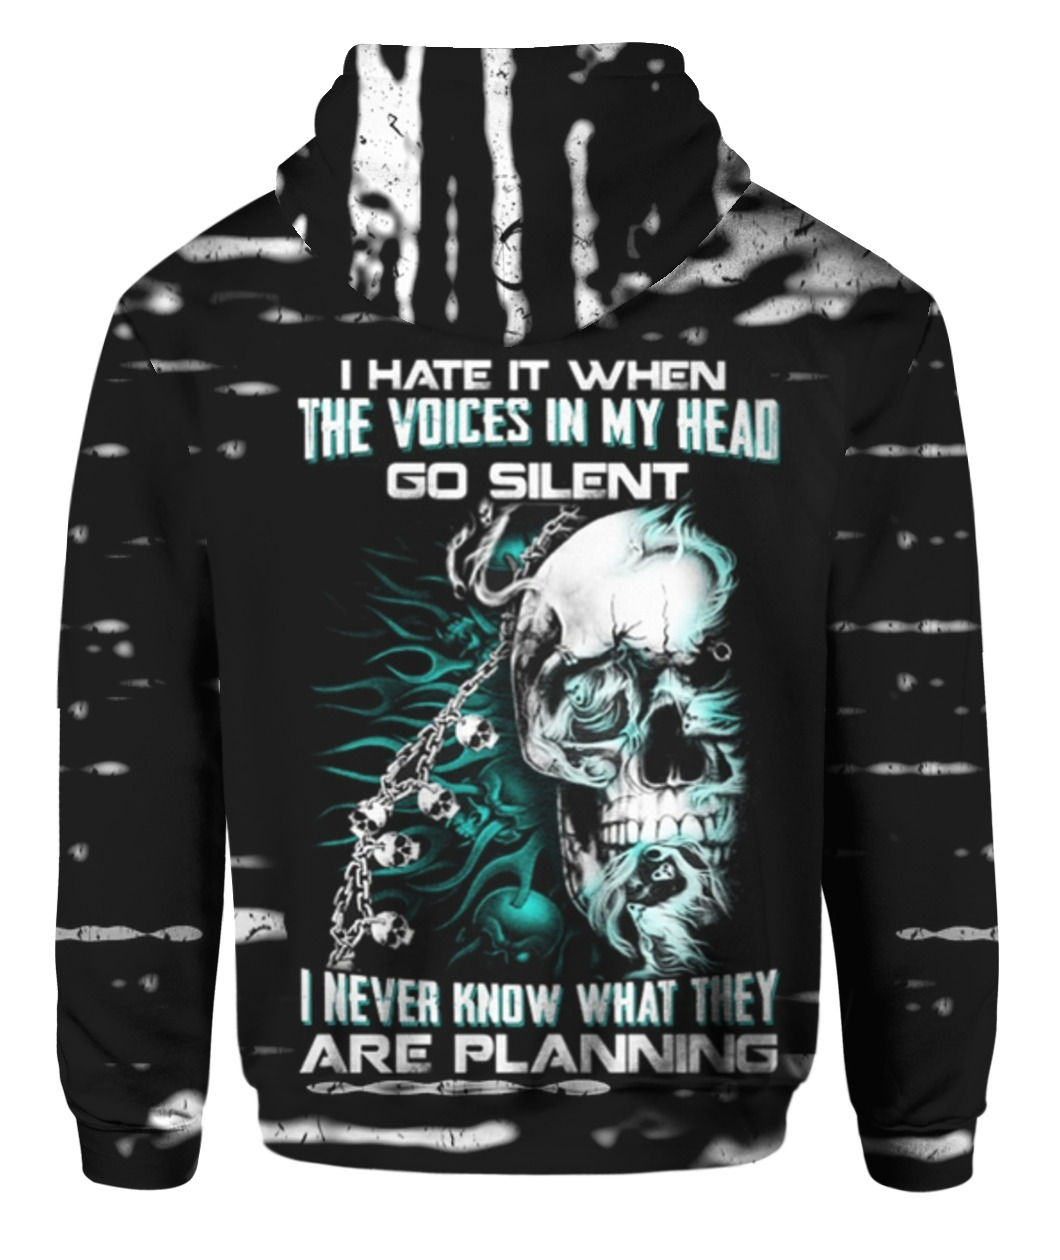 I hate it when the voices in my head go silent I never know what they are planning Skull 3D hoodie - back